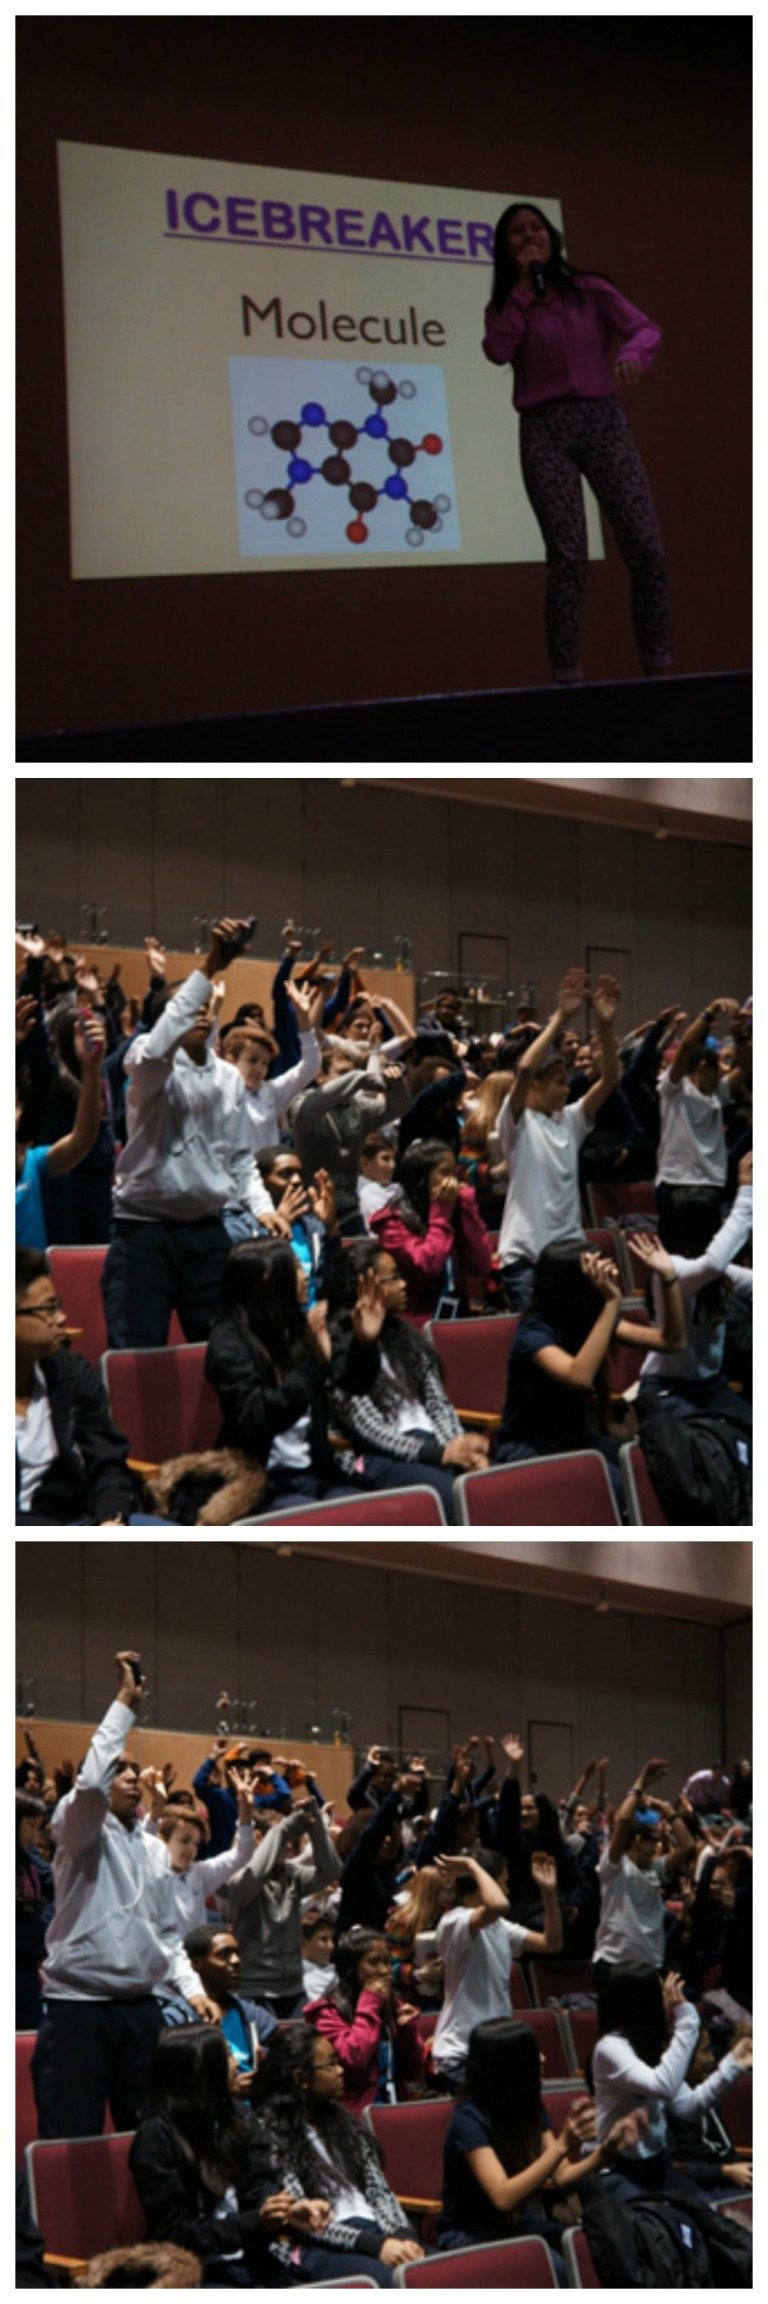 Since the students were in Cardinal Carter's auditorium, Marivic could not have the students play her original ice breaker: molecule. Instead, she had them do the wave!